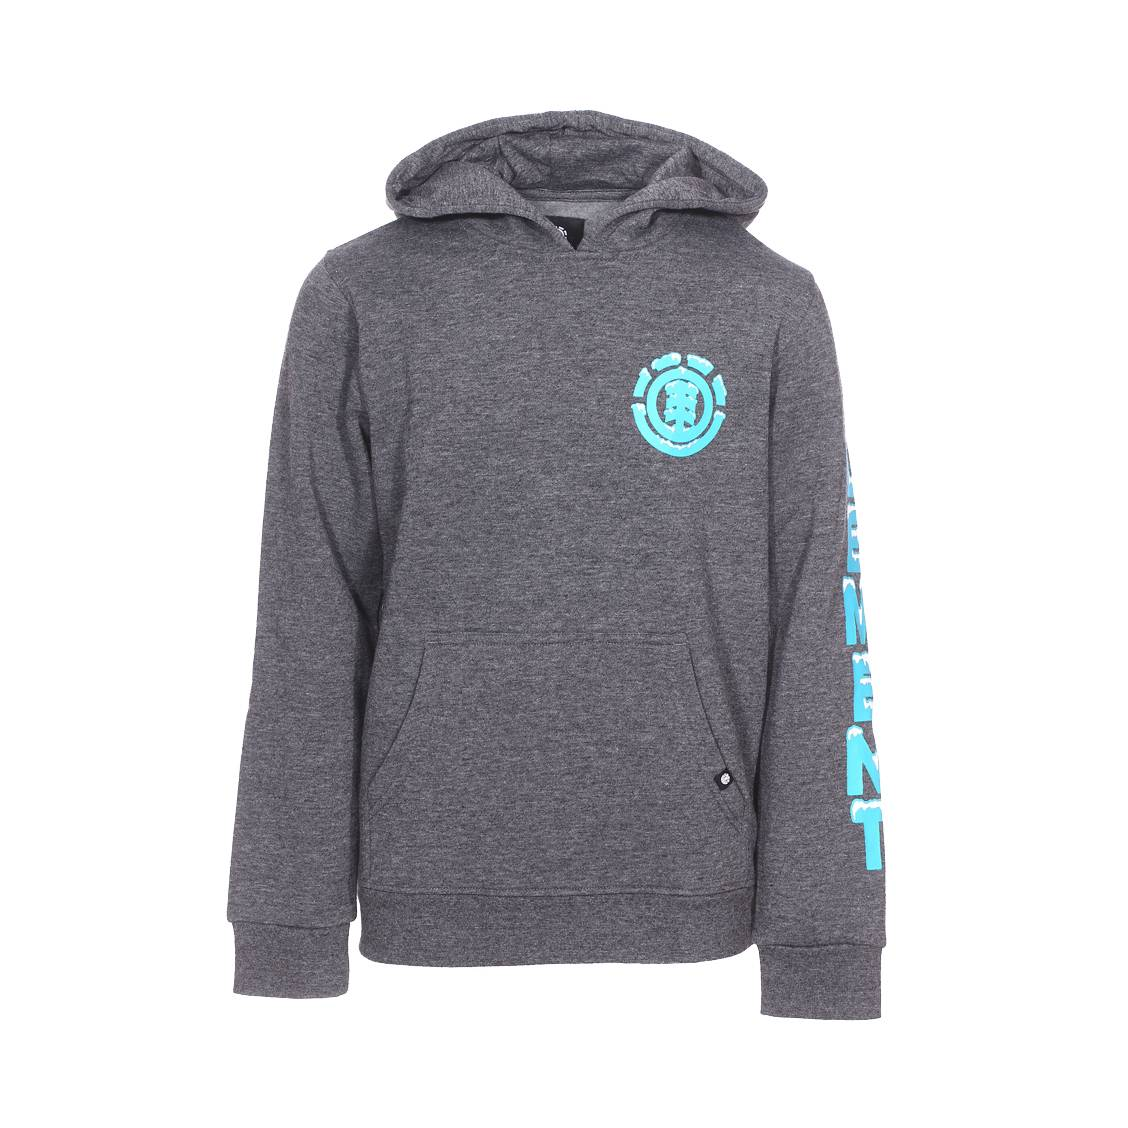 Royaume-Uni 100% de qualité vente chaude Sweat à capuche Element Junior Snow en molleton gris anthracite chiné floqué